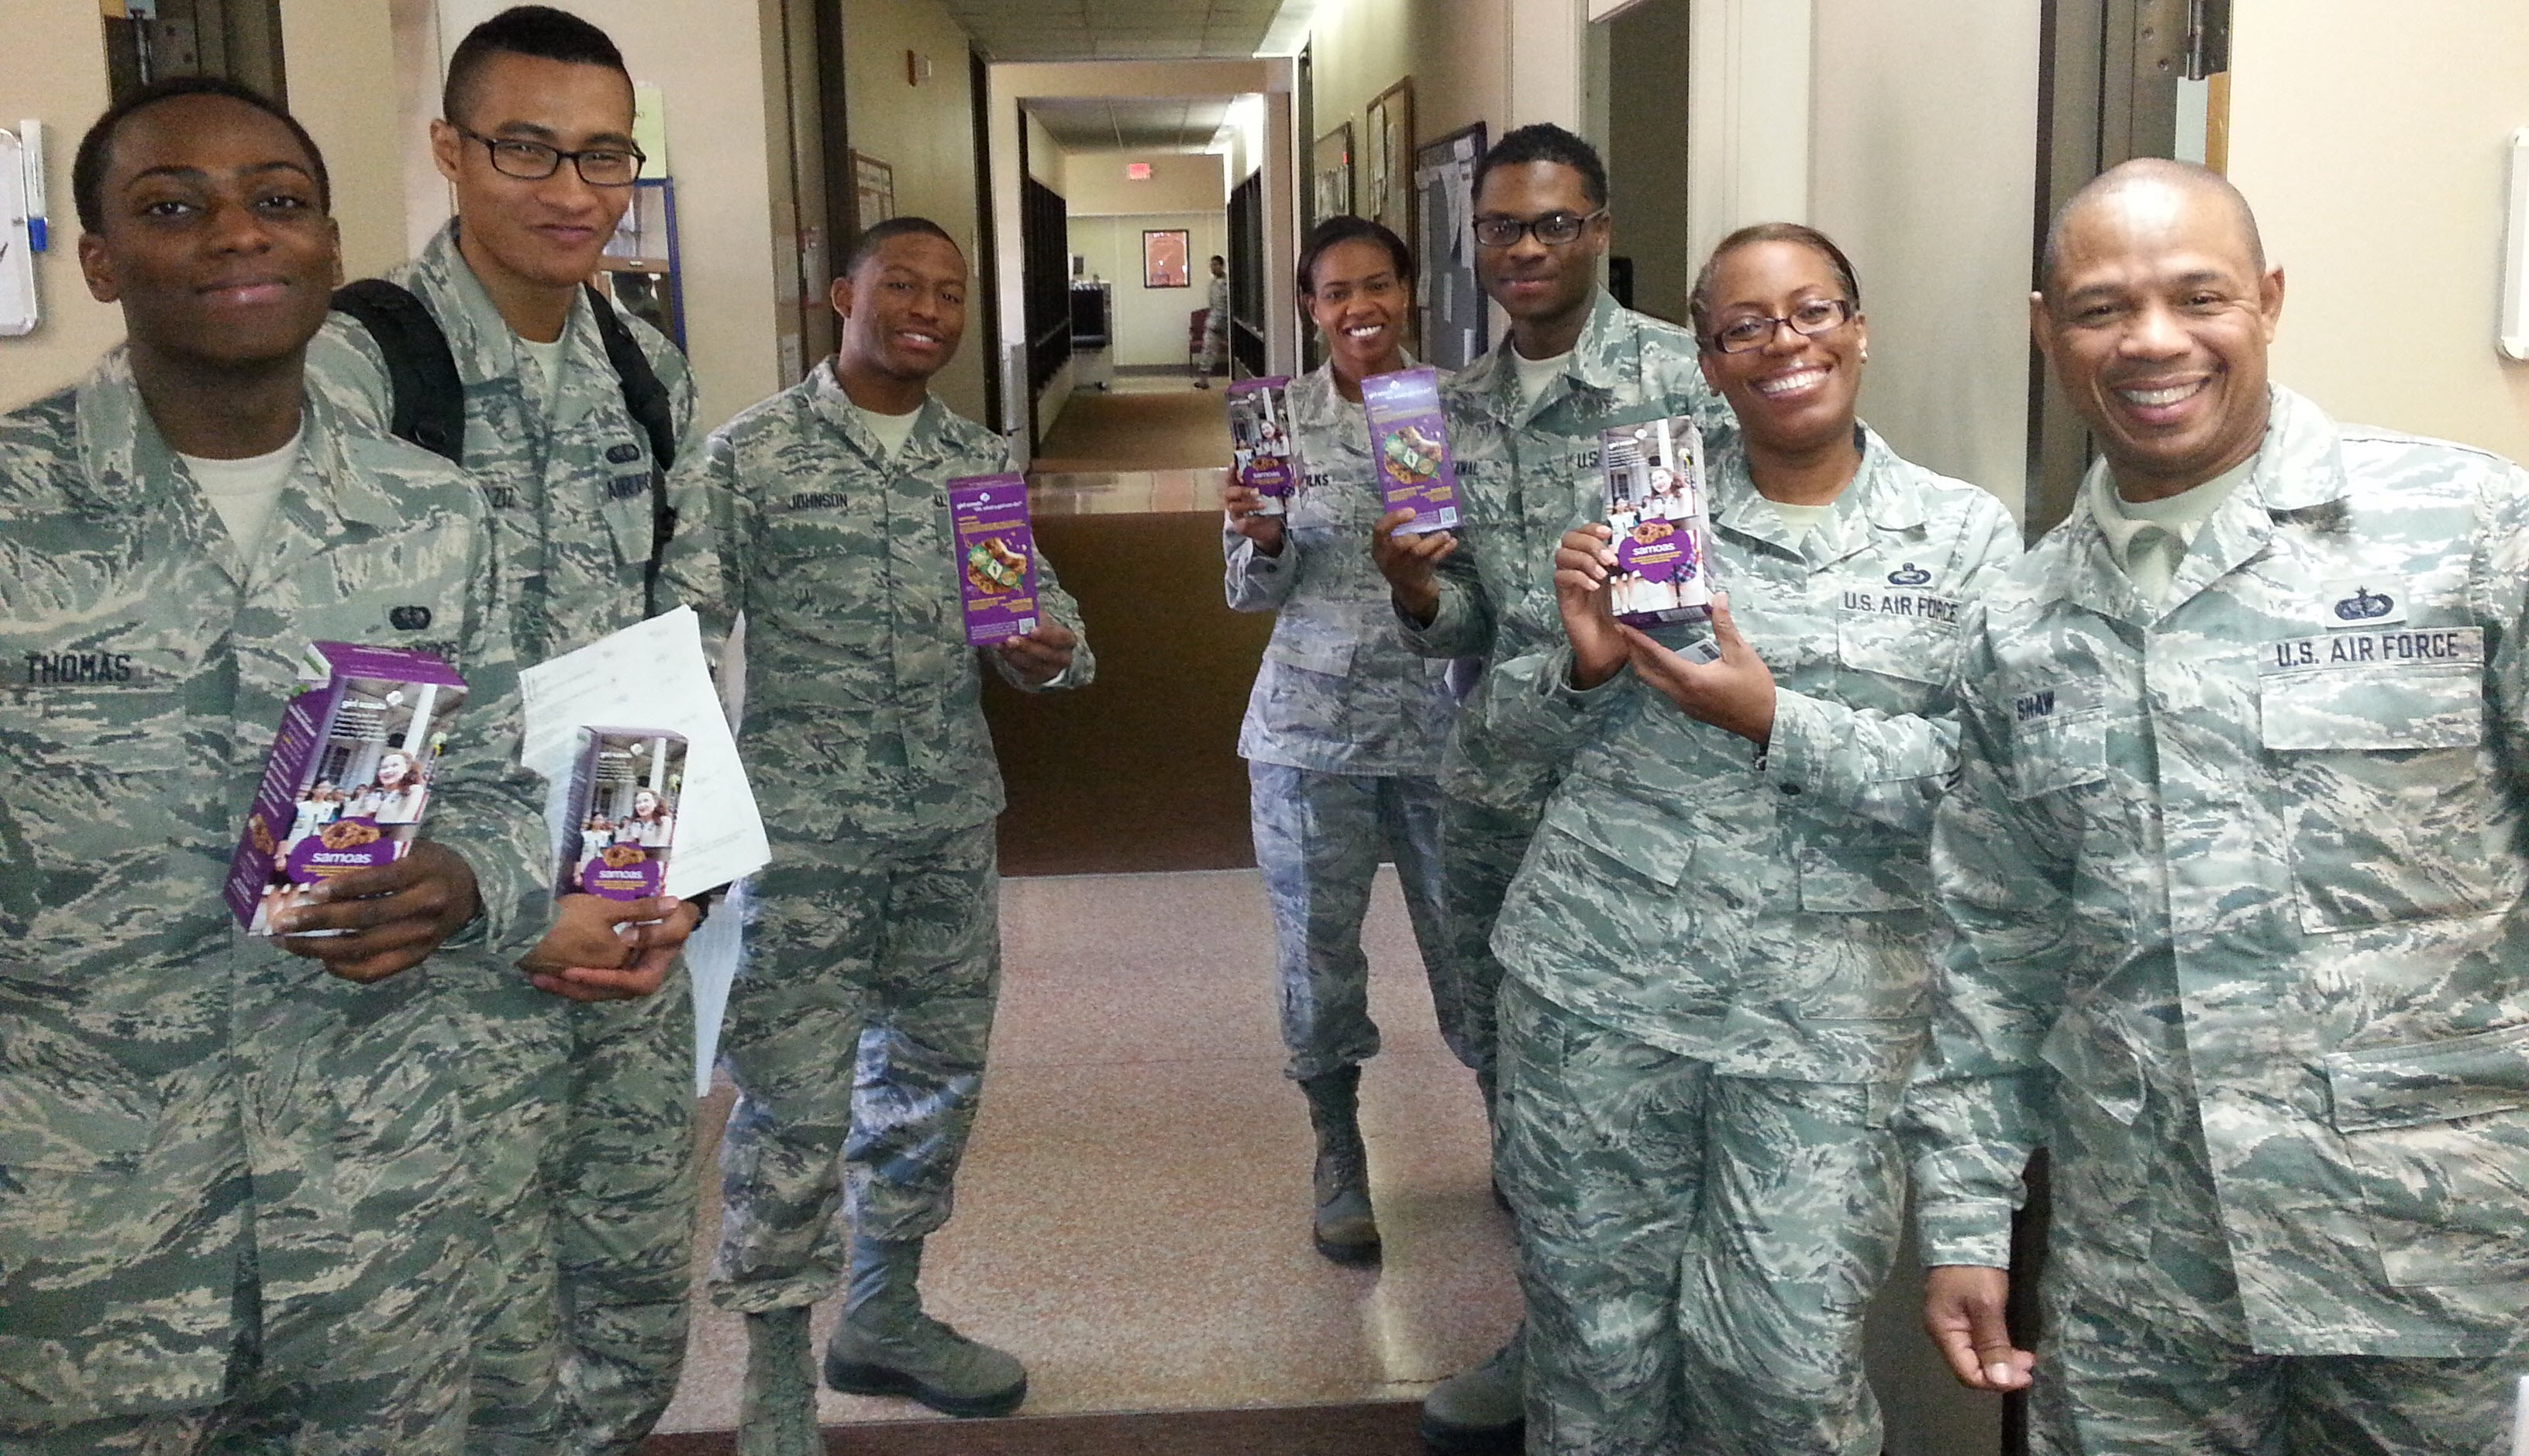 Soldiers\' Angels - Girl Scout Cookies for our Troops!